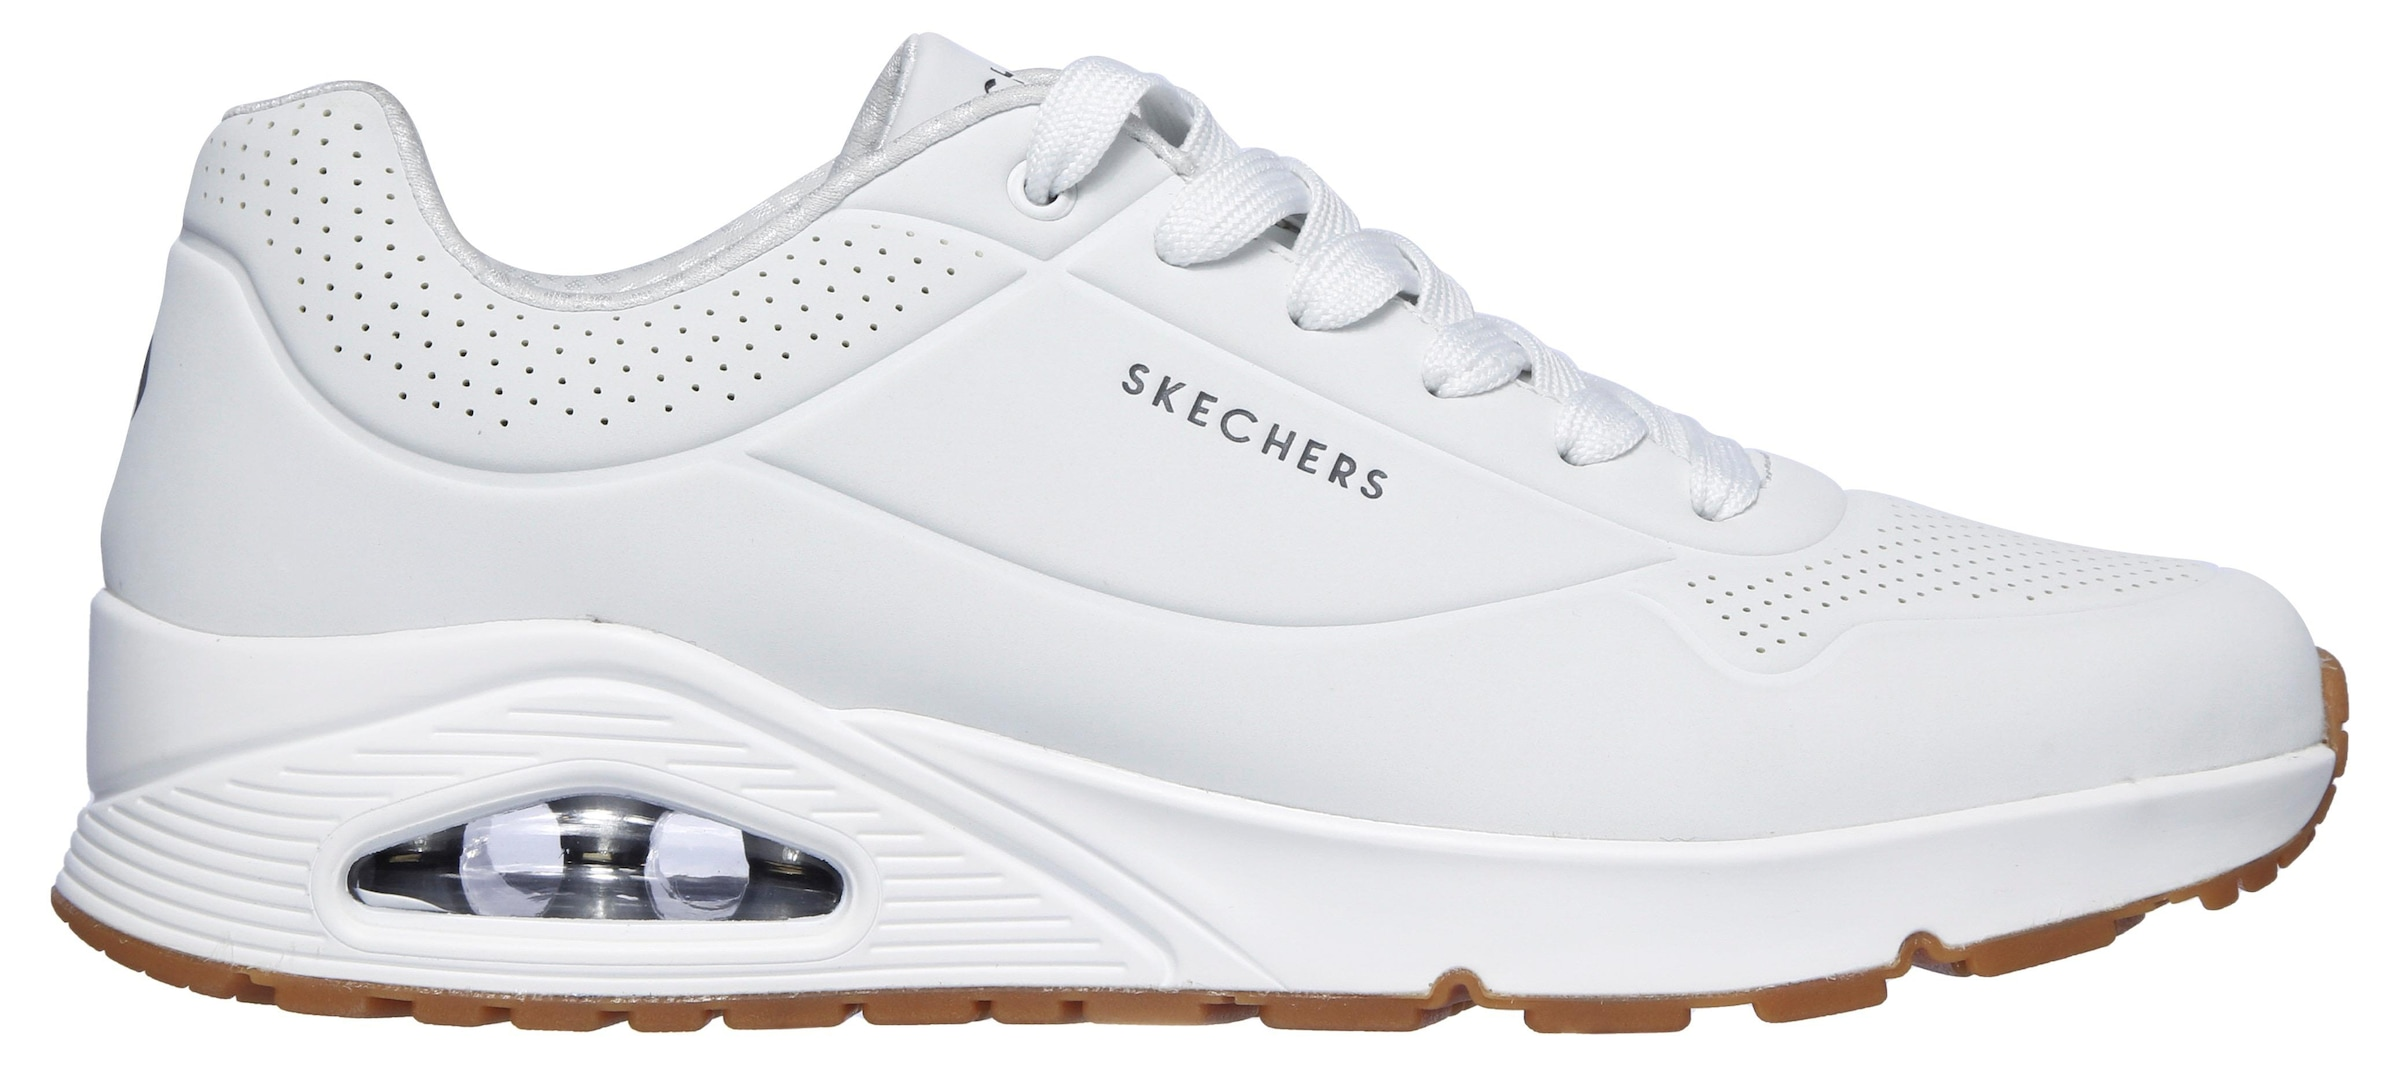 Schuhcenter | SALE Skechers EZ Flex 3.0 Willowy Slipper